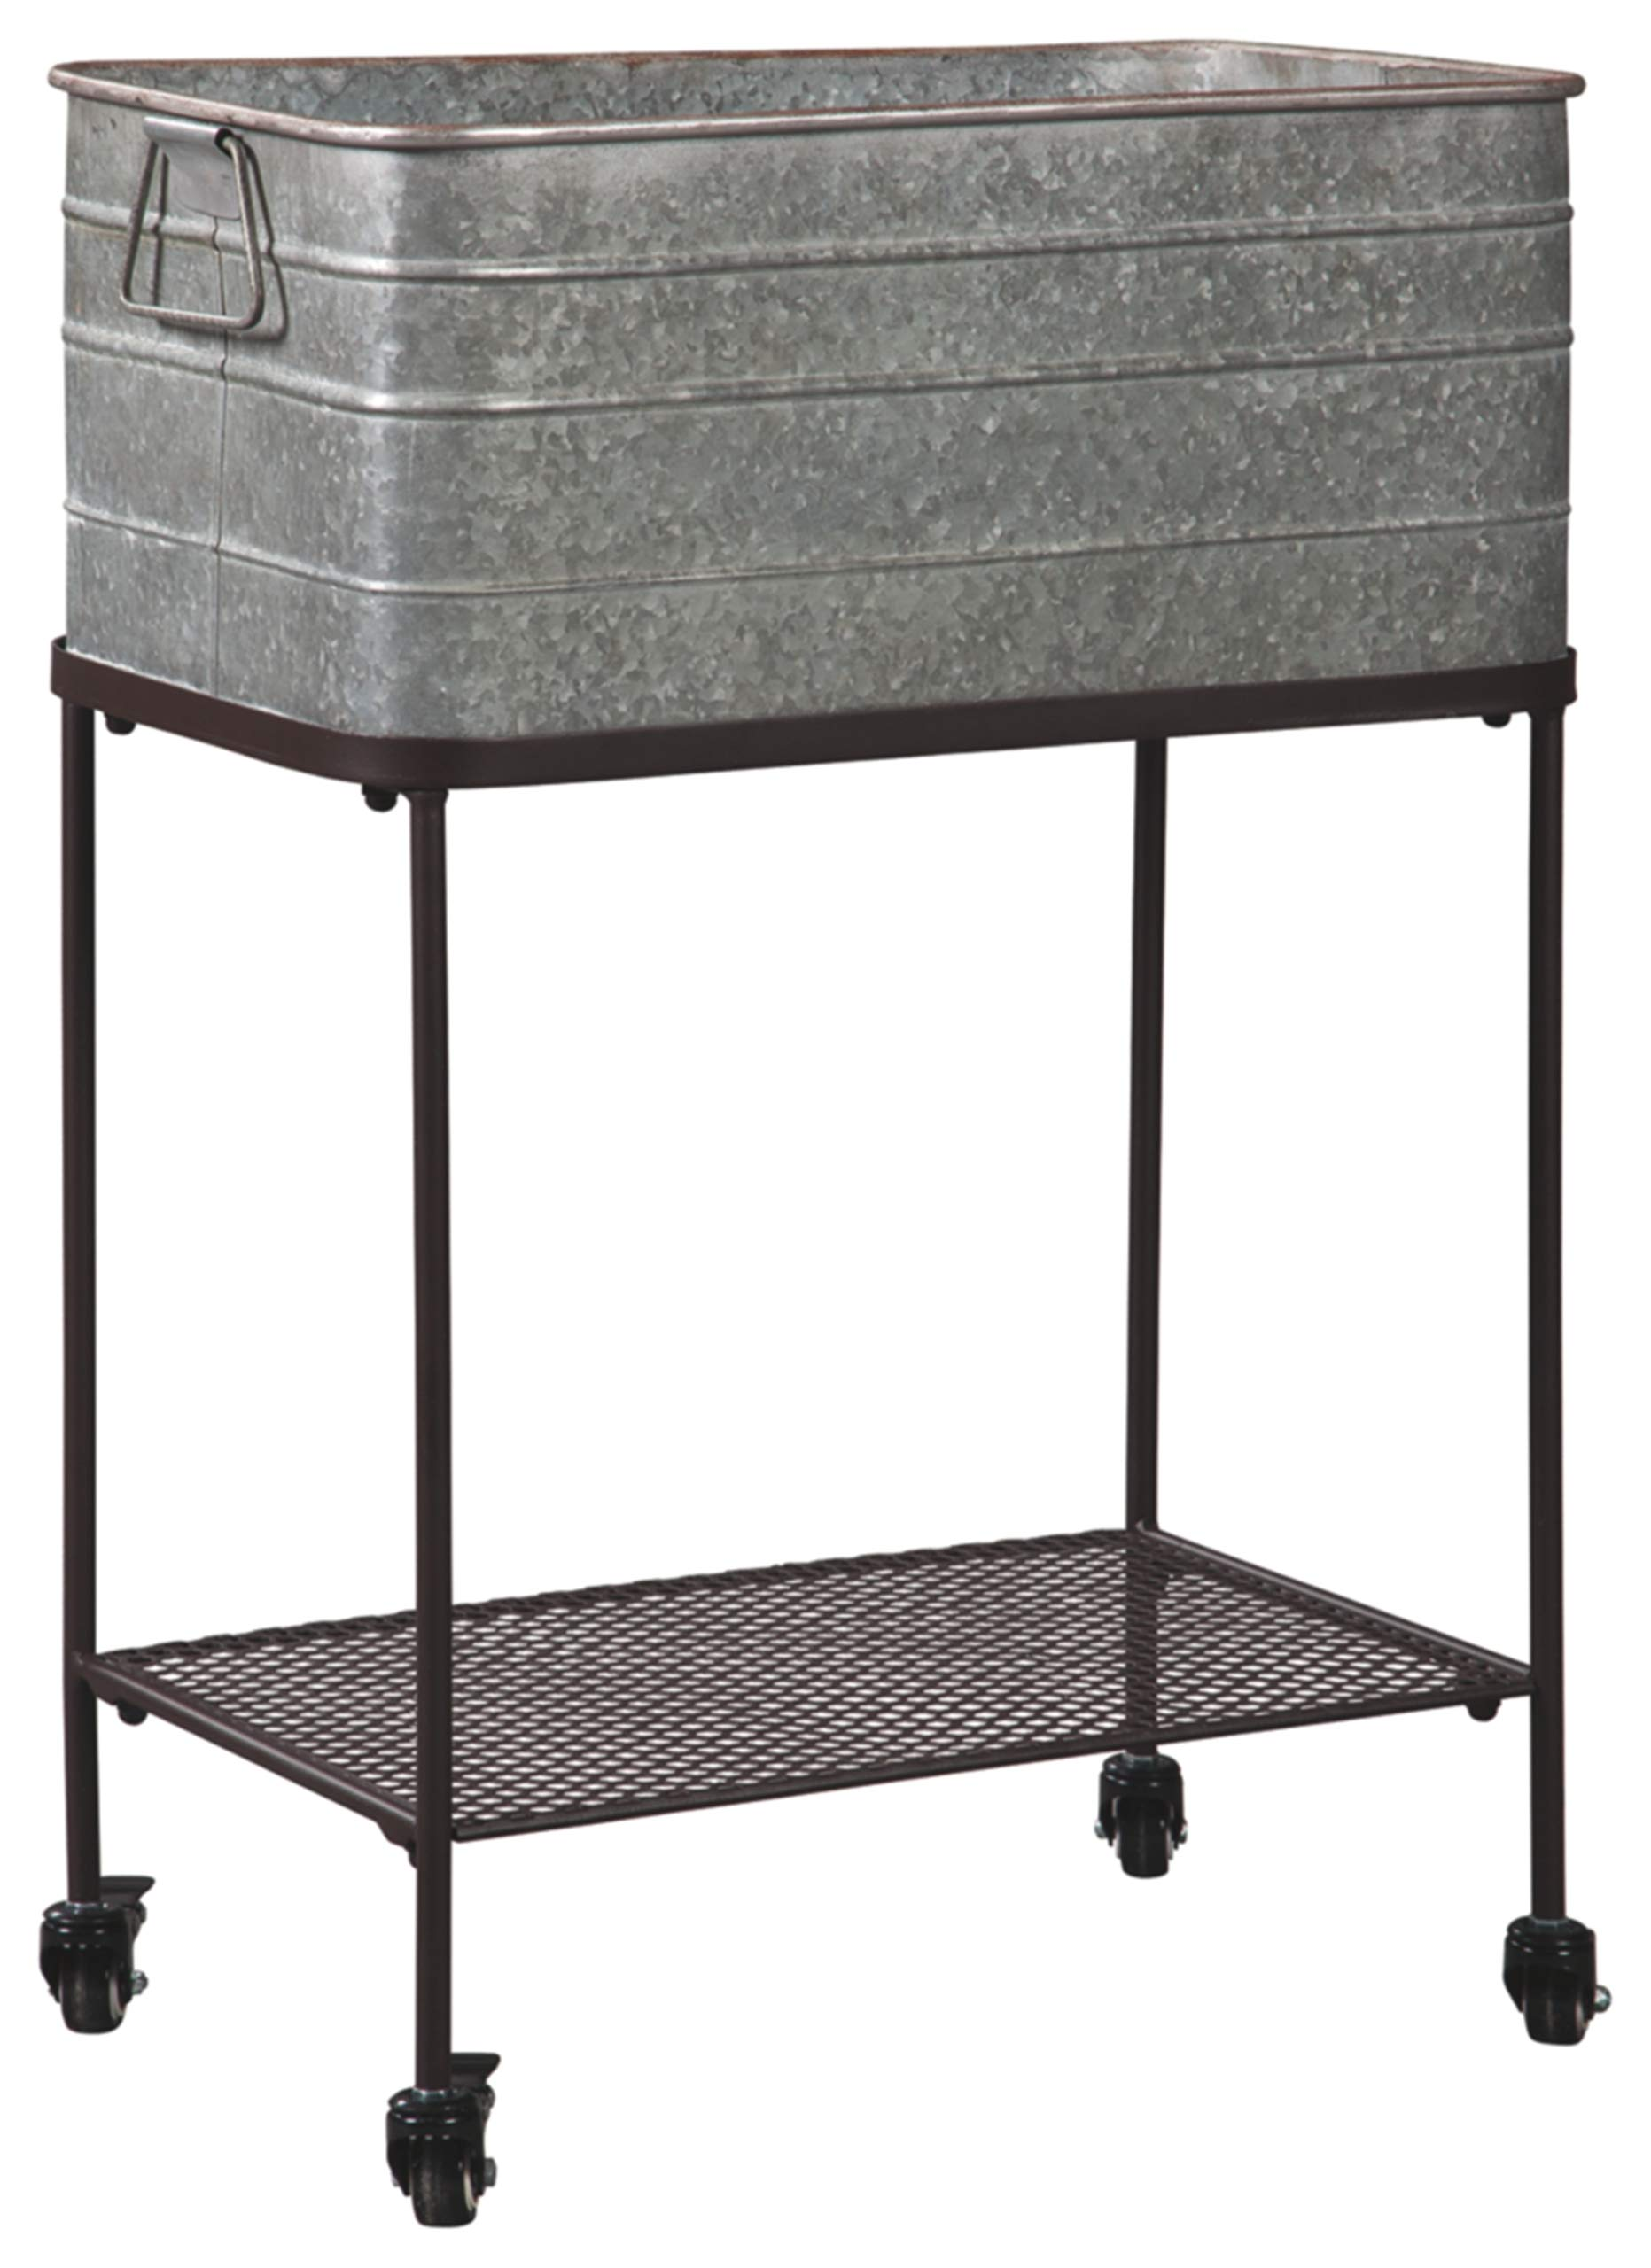 Signature Design by Ashley A4000084 Vossman Beverage Tub Metal/Brown